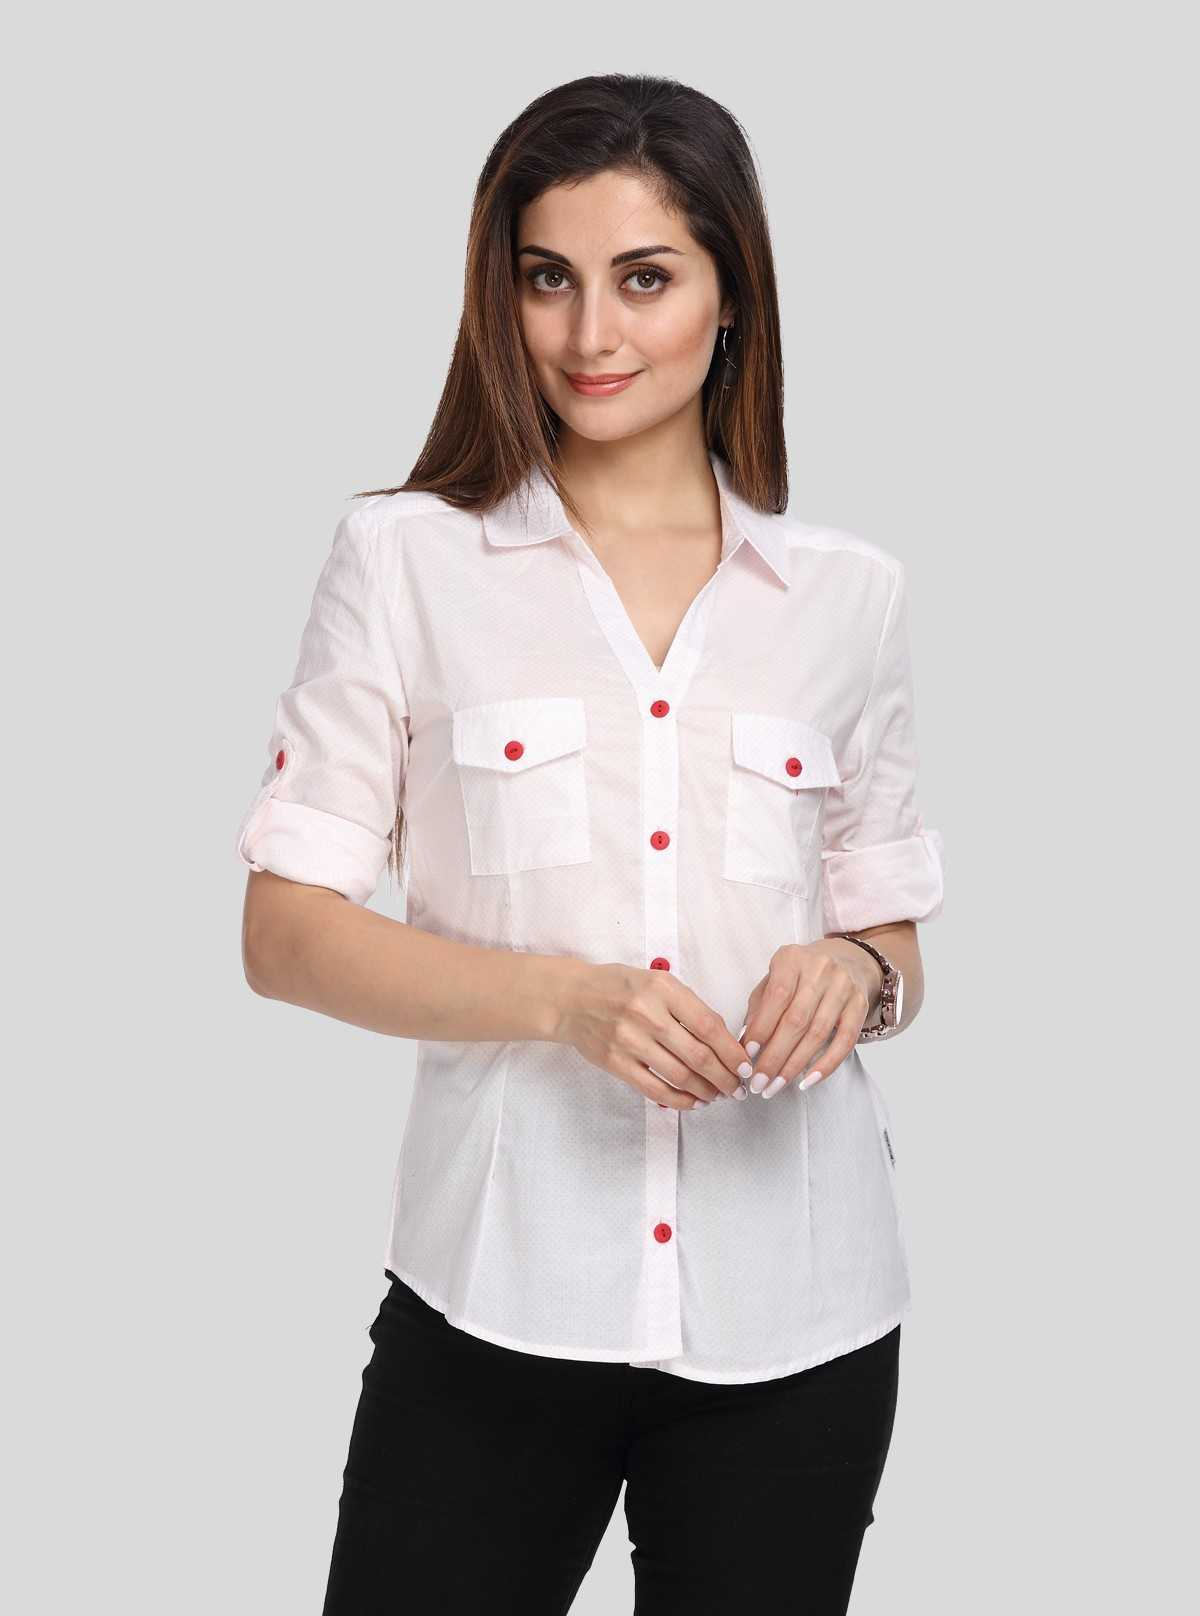 Women S White Casual Shirt Boer And Fitch Color White Size L Women's shirts not only offered the best coverage of their upper body but also made them stay comfortable. white self design women shirt